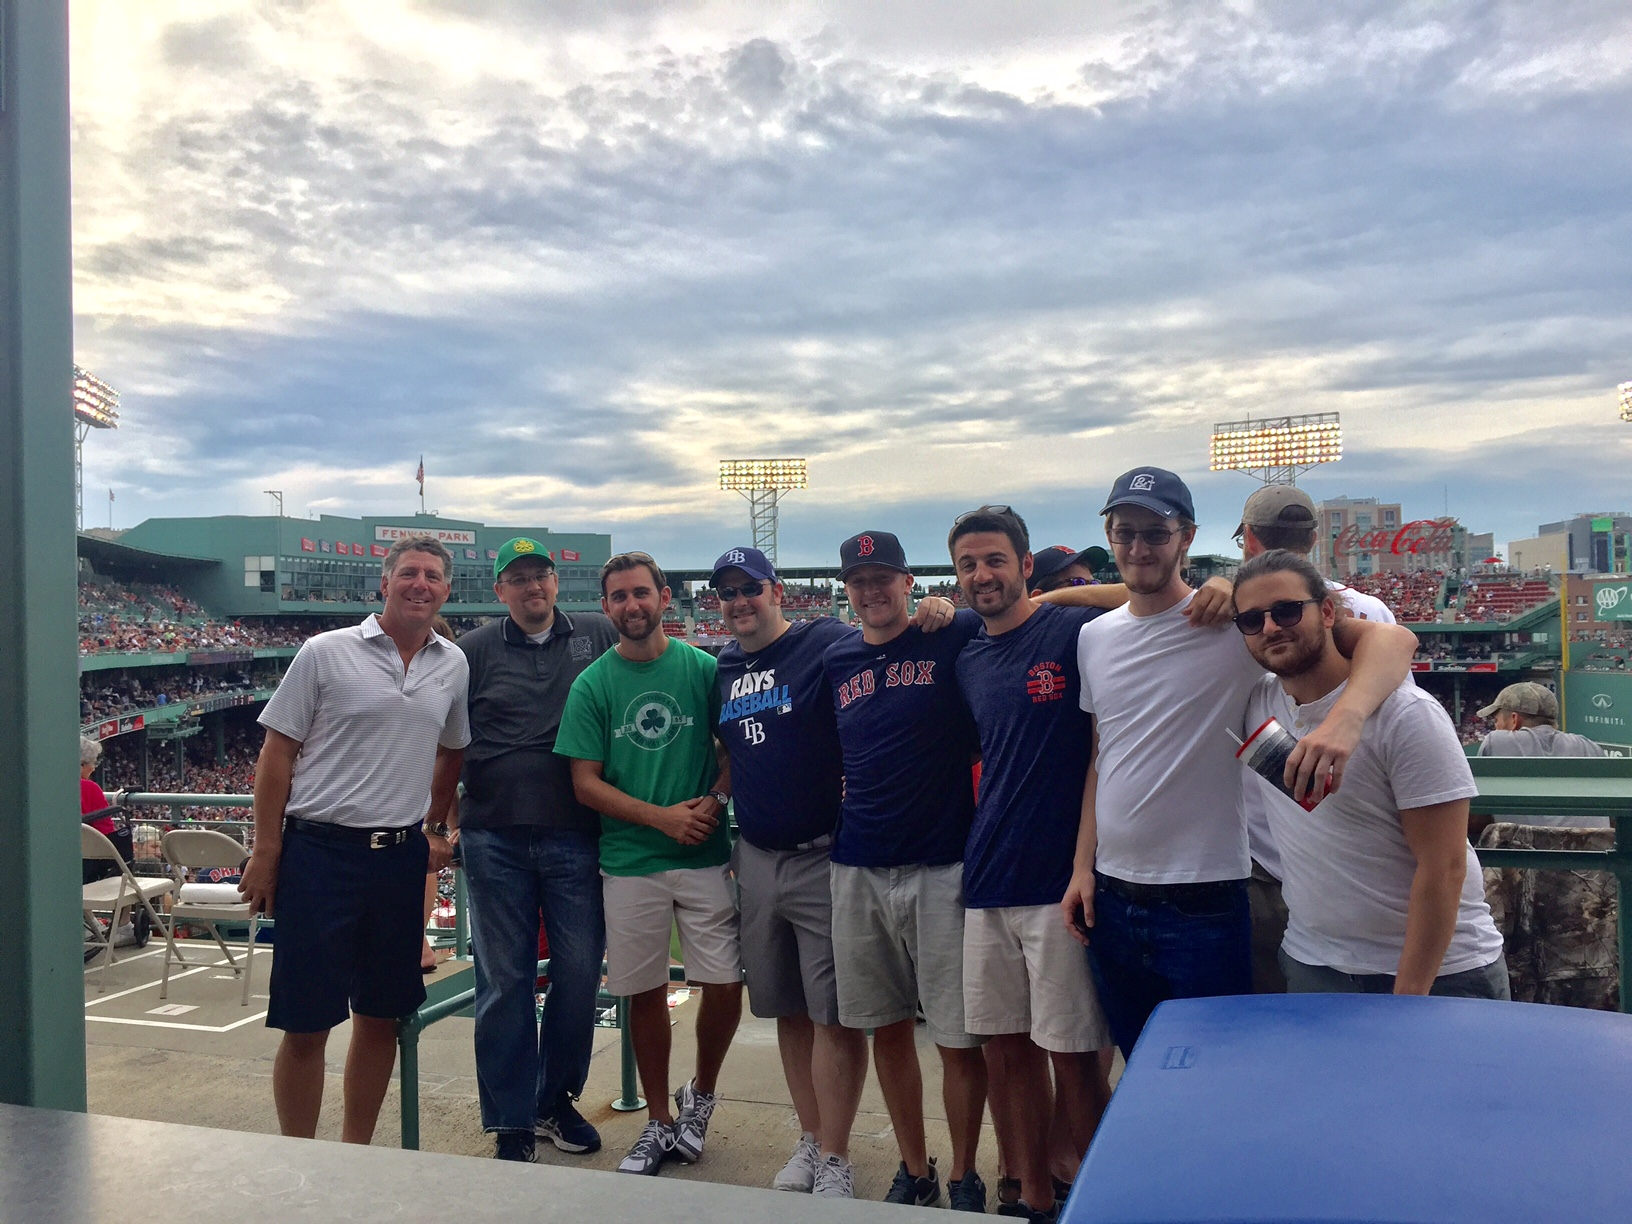 Crunched accounting team members at a redsox baseball game